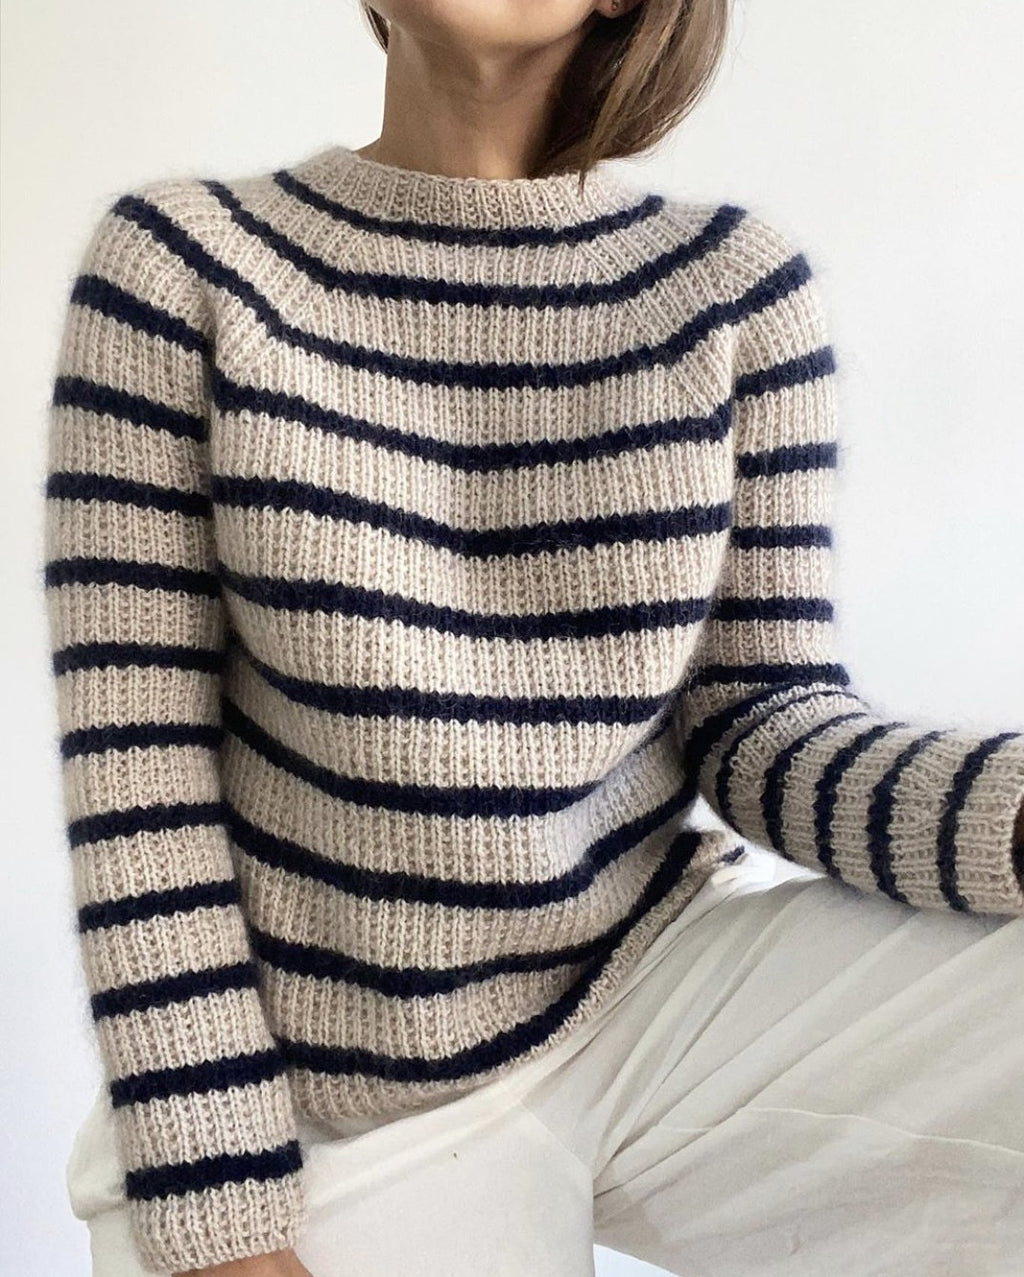 Sweater No. 12 - ENG